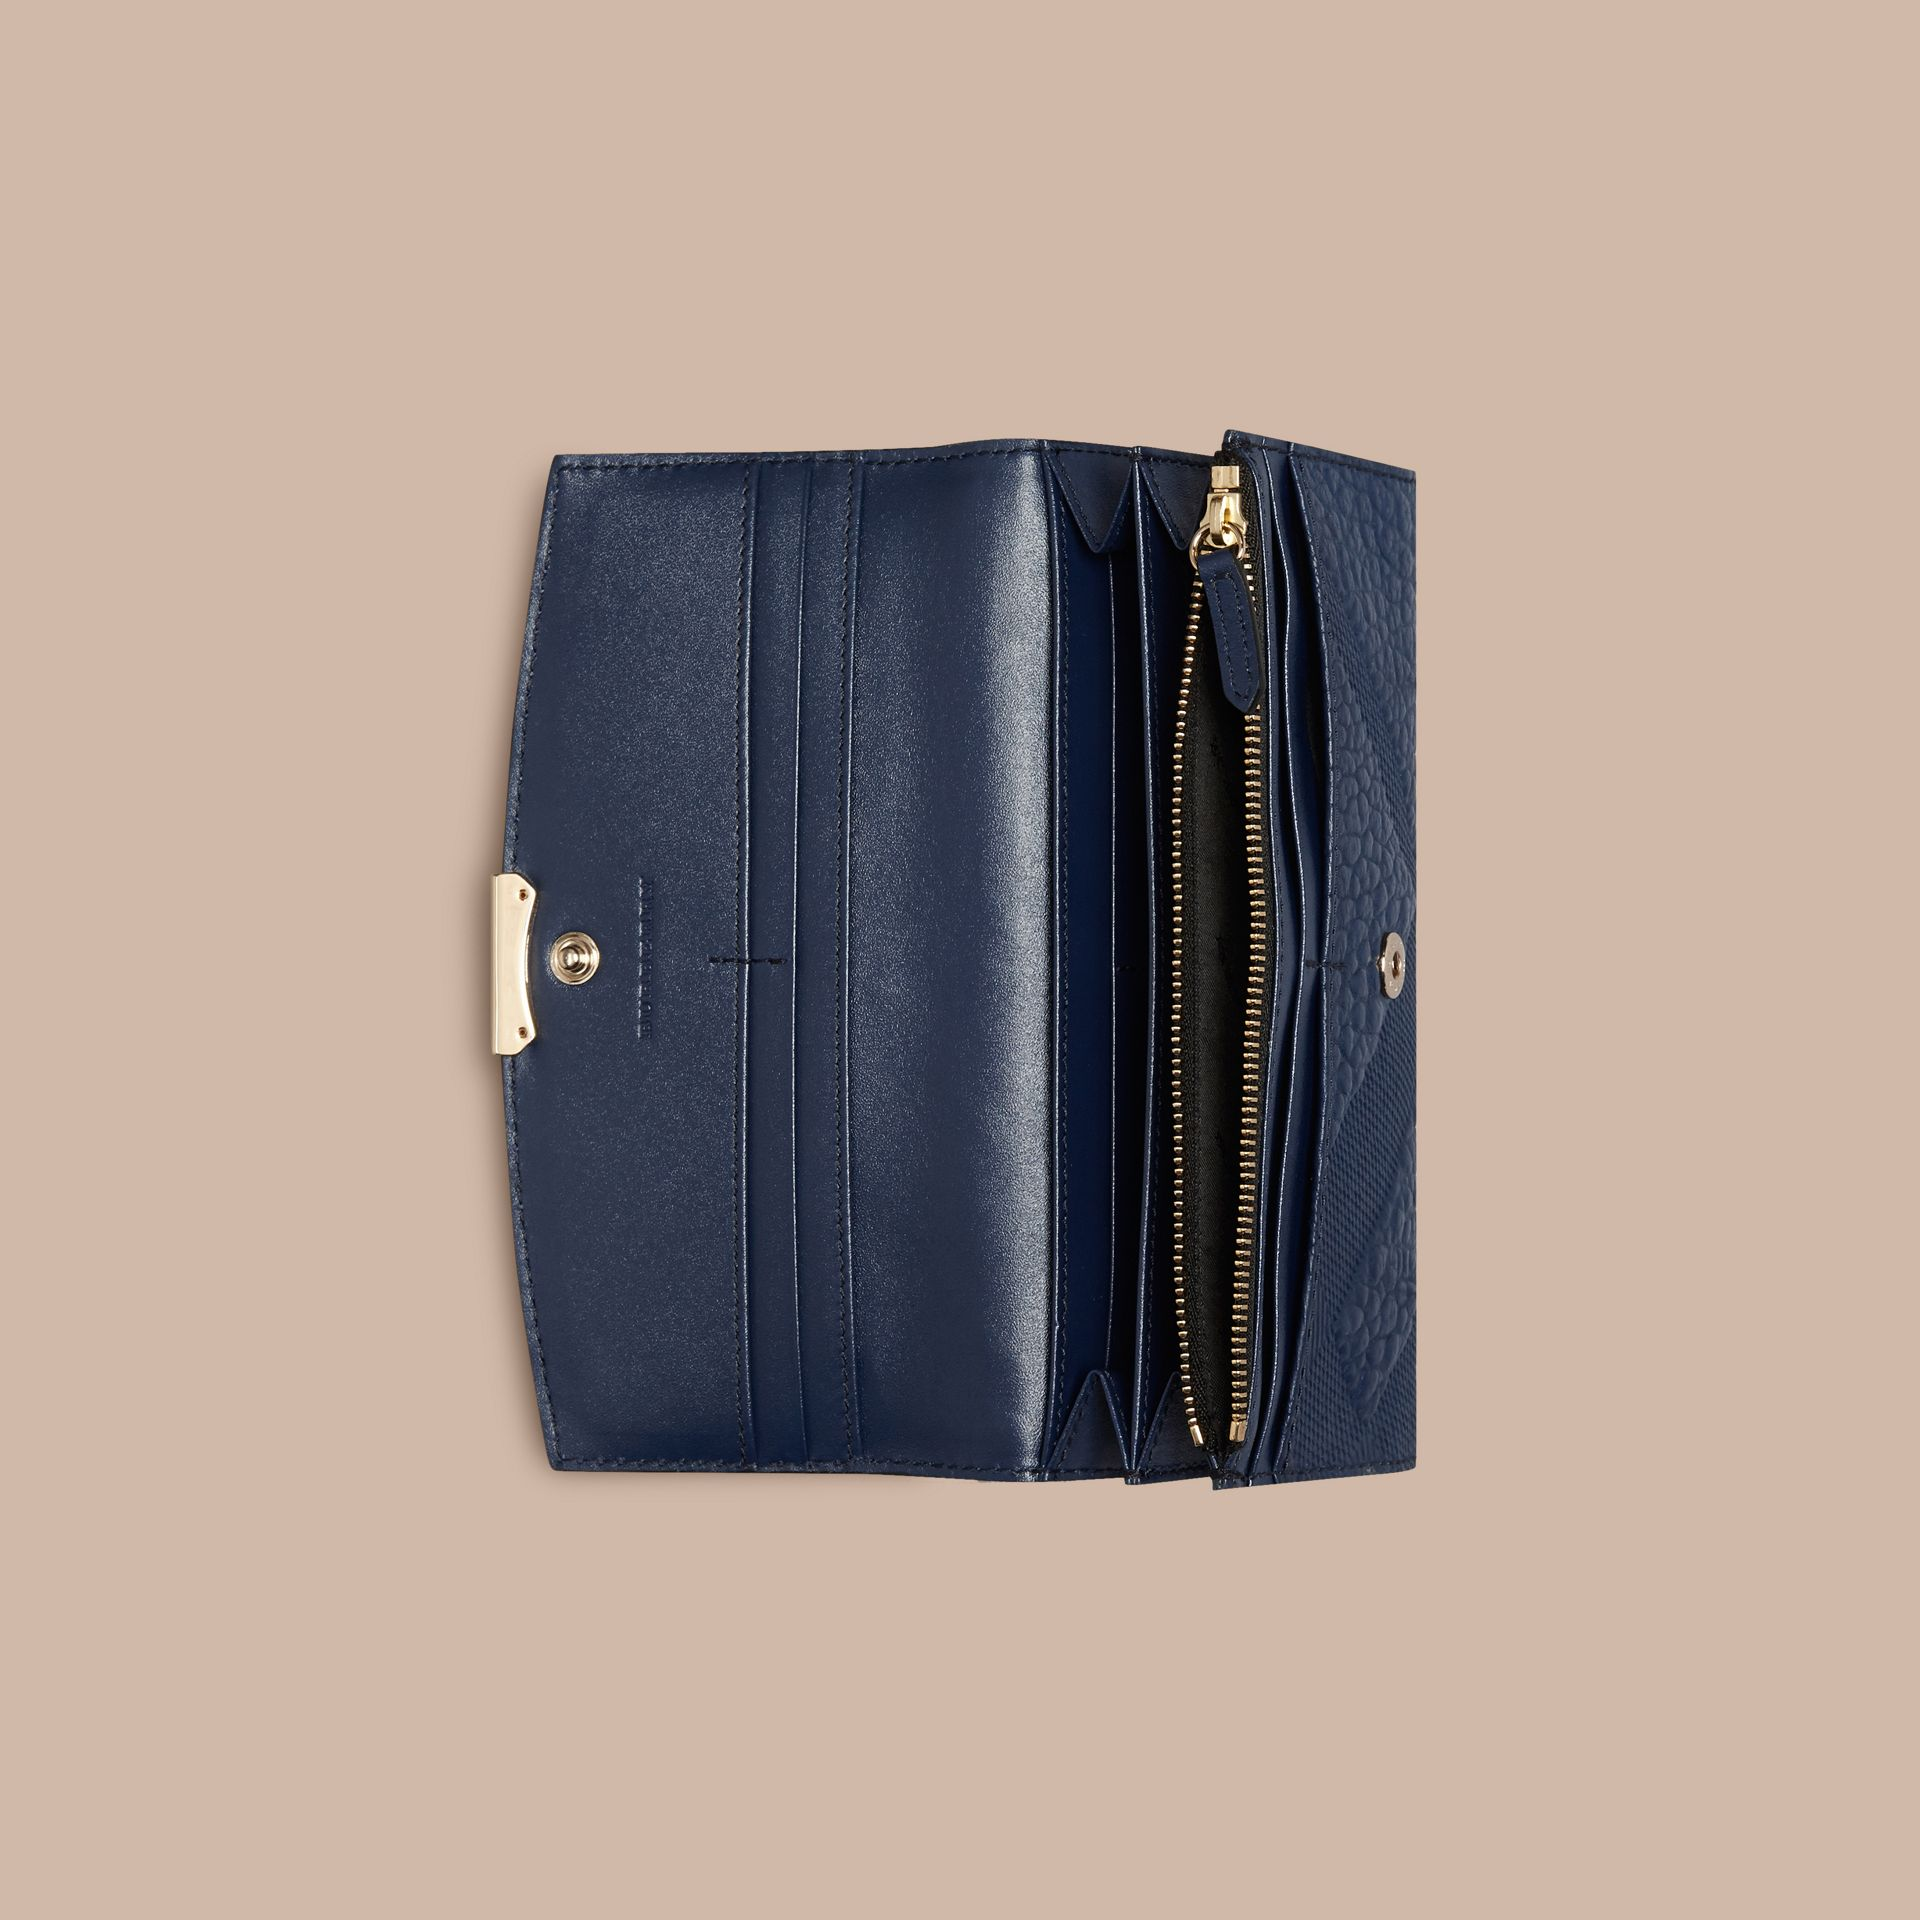 Burberry Embossed Leather Zip Around Wallet: Embossed Check Leather Continental Wallet Blue Carbon